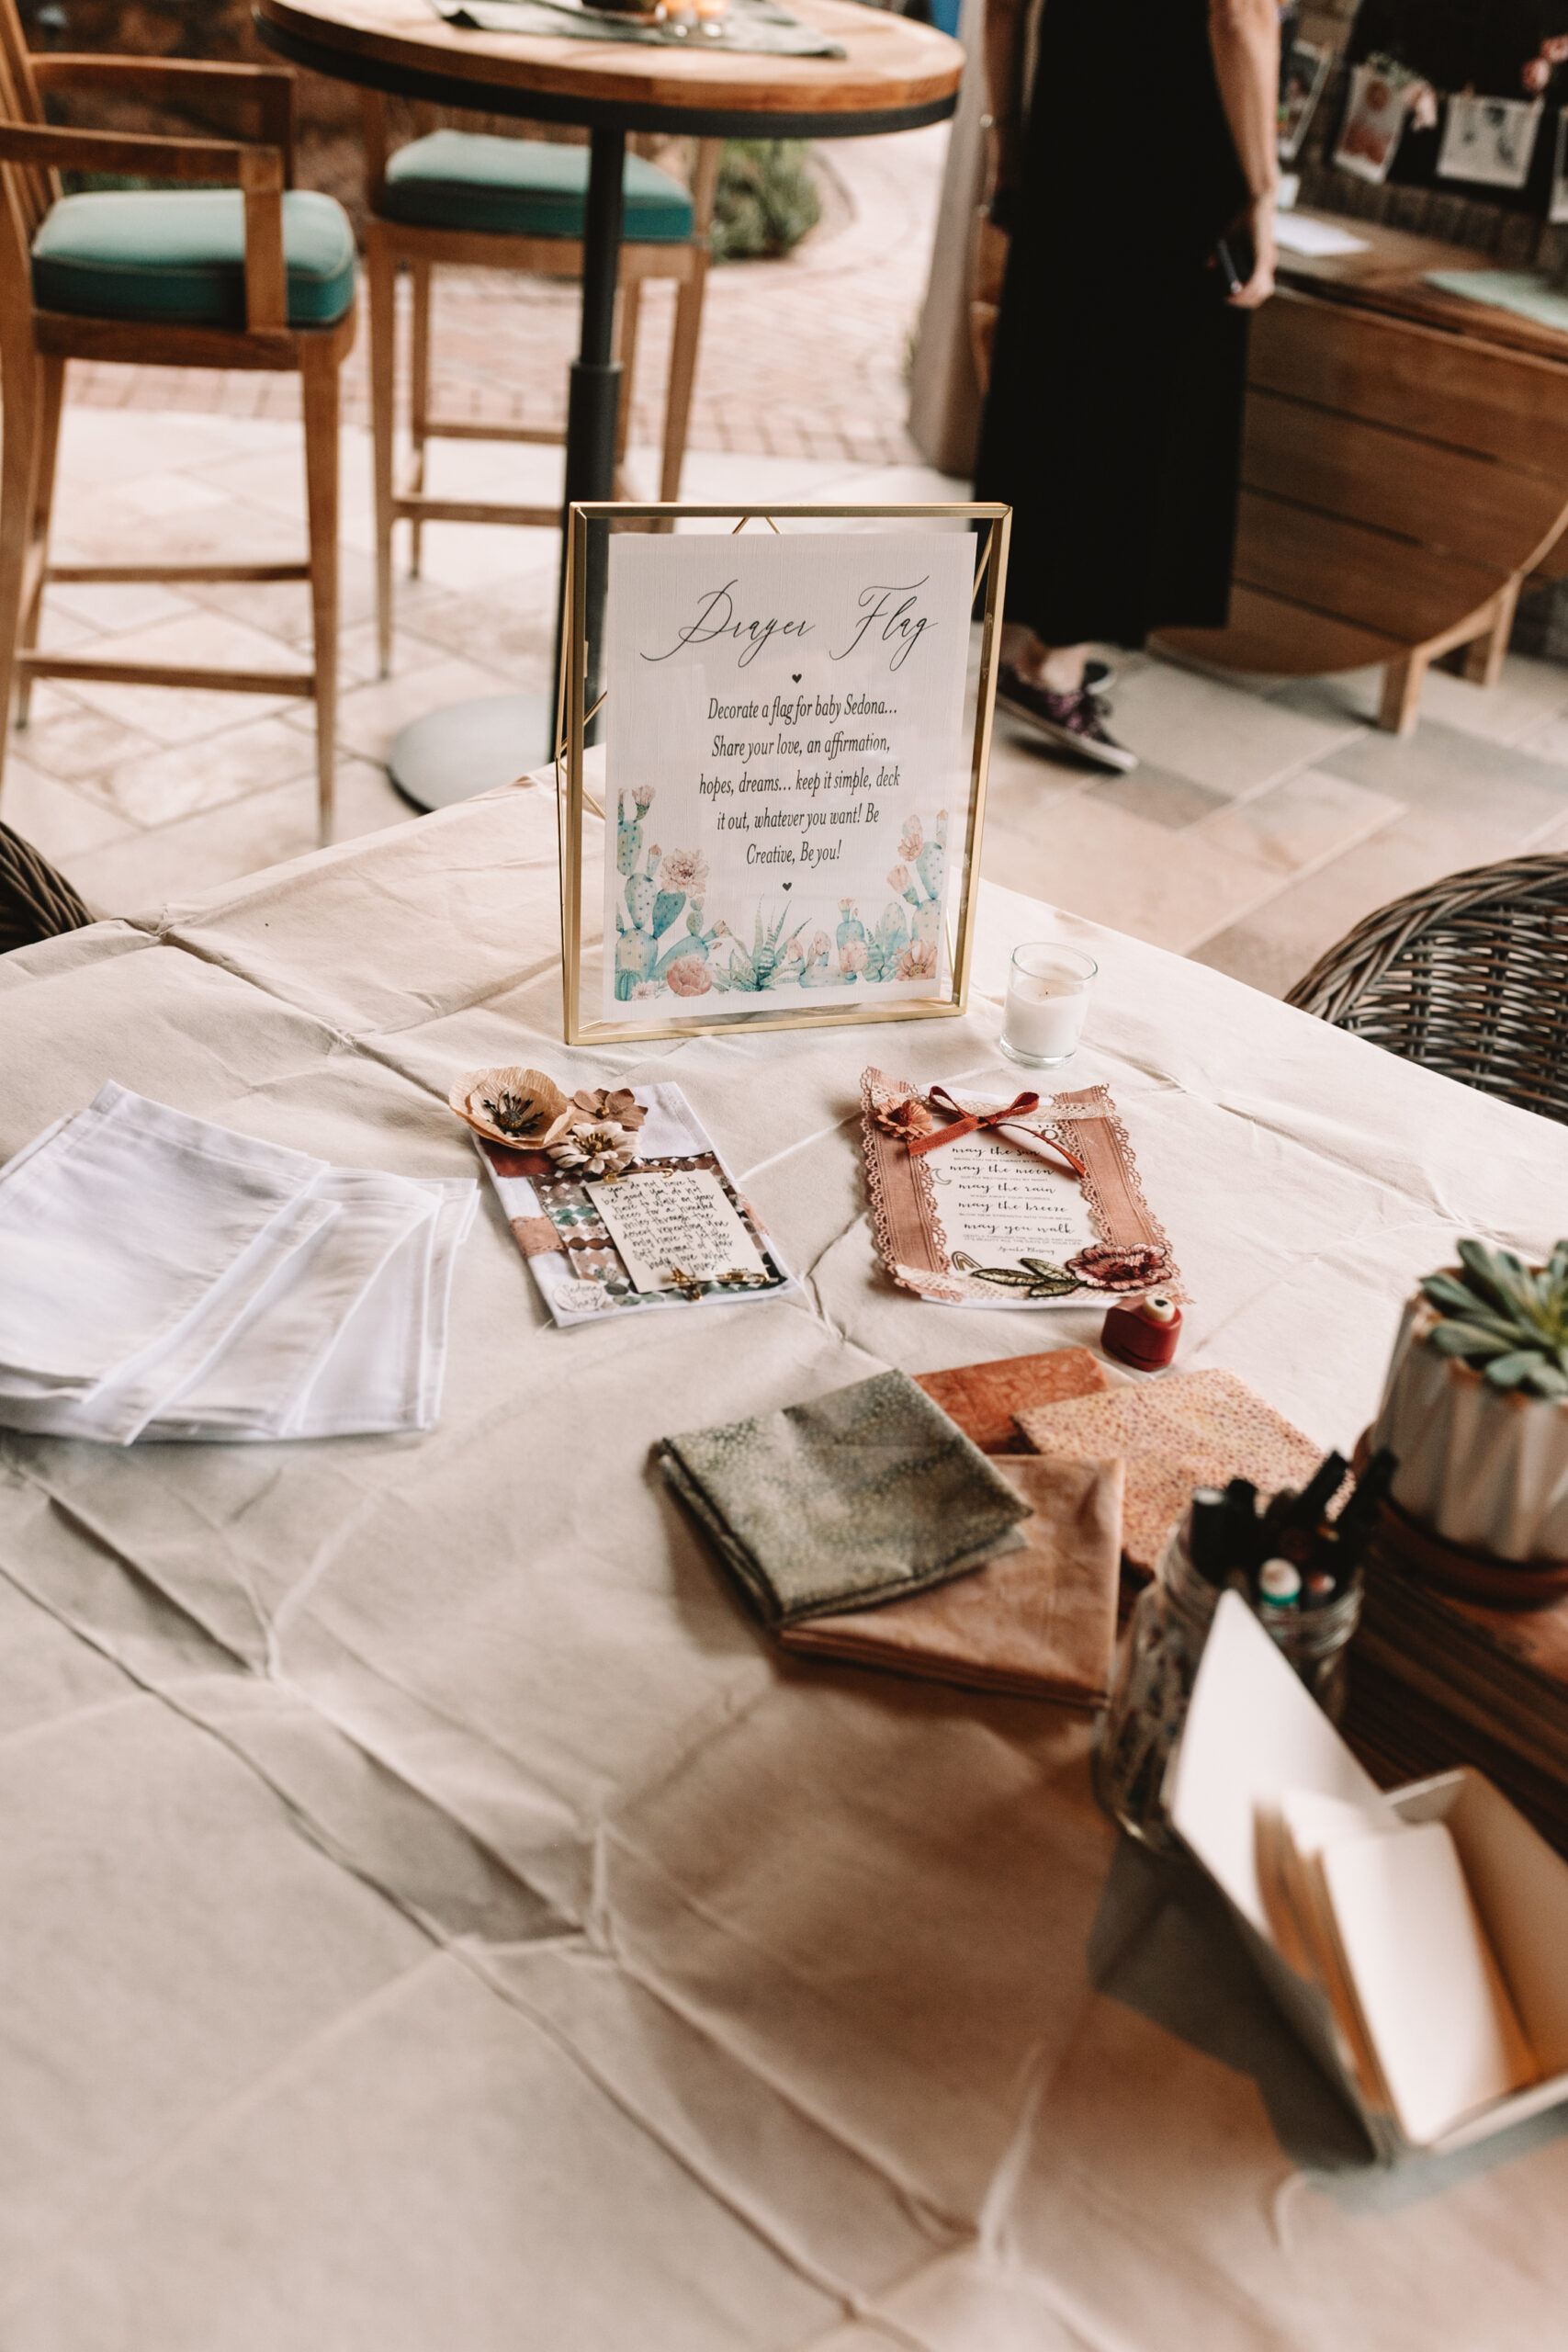 create a prayer flag with messages for the new baby from all of her loved ones #babyshowerideas #babyshoweractivity #babyshowergames #bohochicbabyshwer